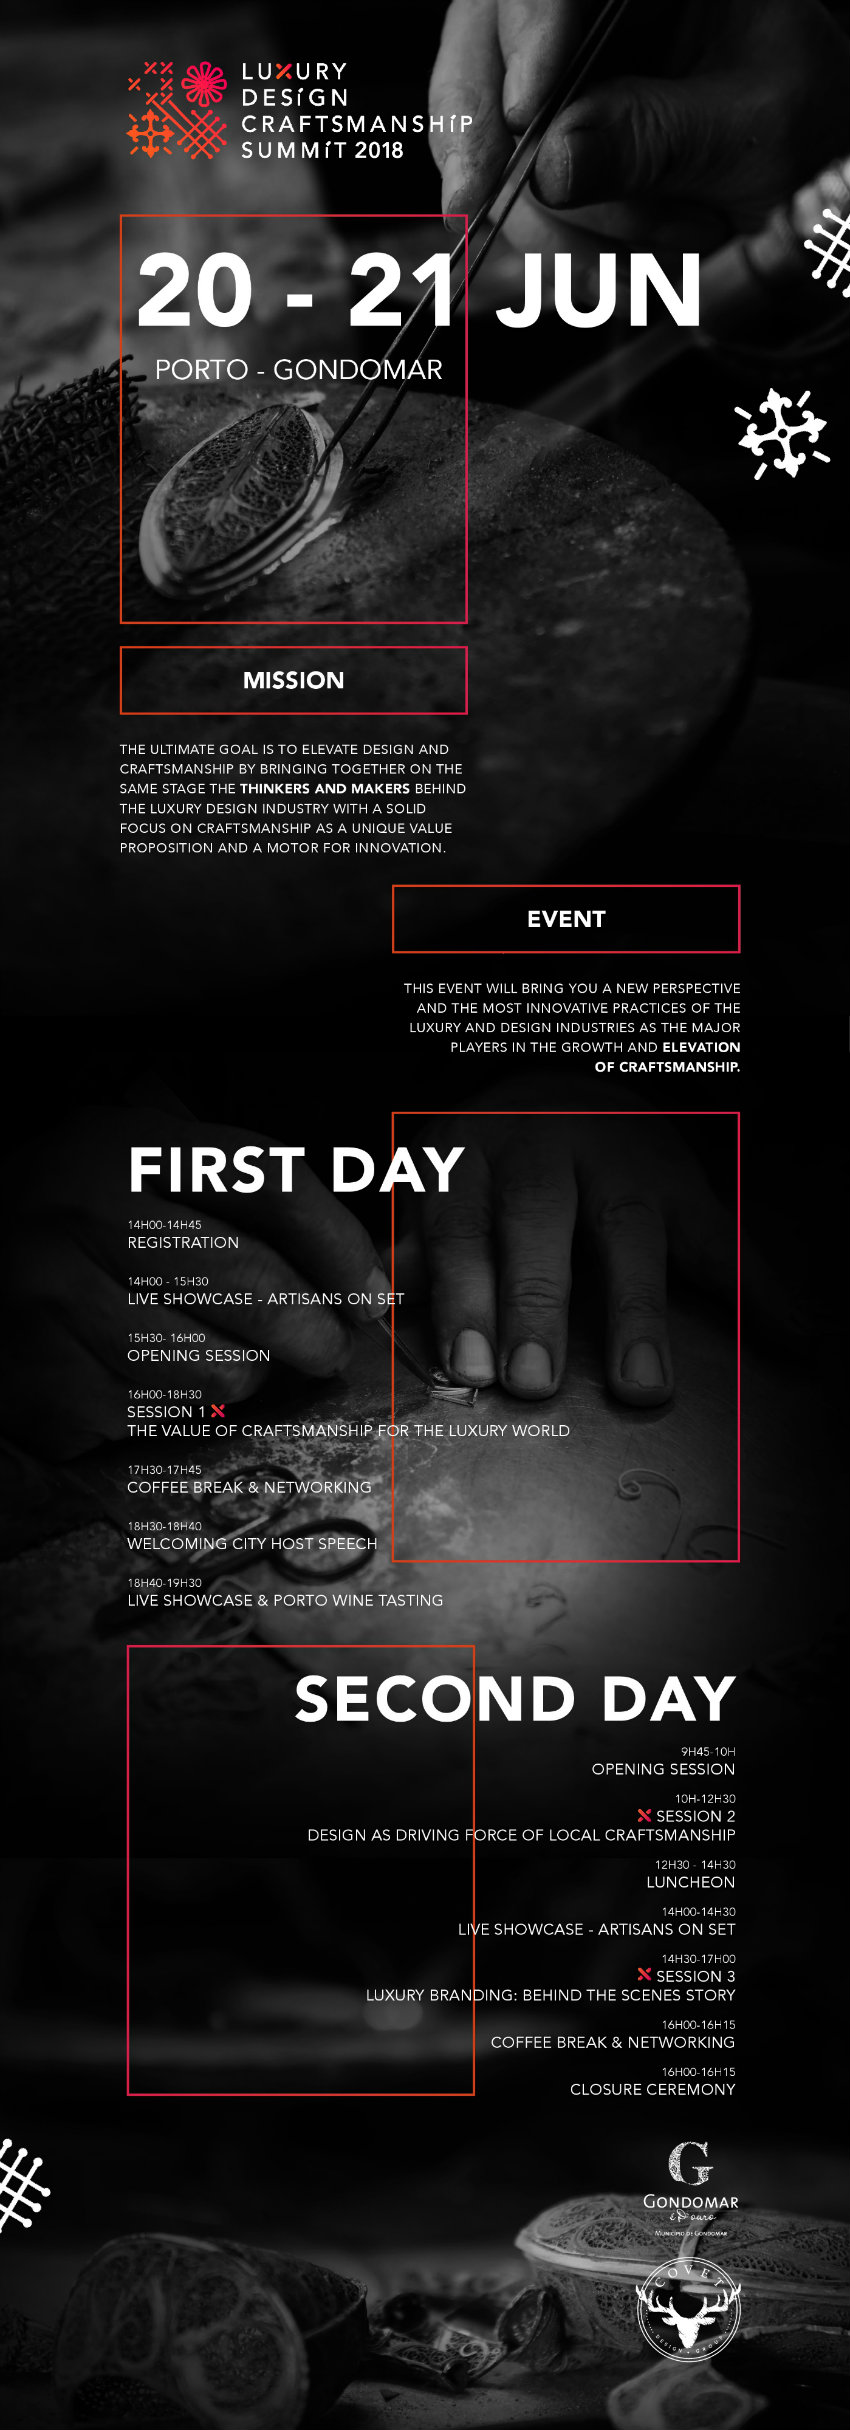 The Luxury Design and Craftsmanship Summit 2018 You Must Attend luxury design and craftsmanship summit The Luxury Design and Craftsmanship Summit 2018 You Must Attend 001 summit infographic 001